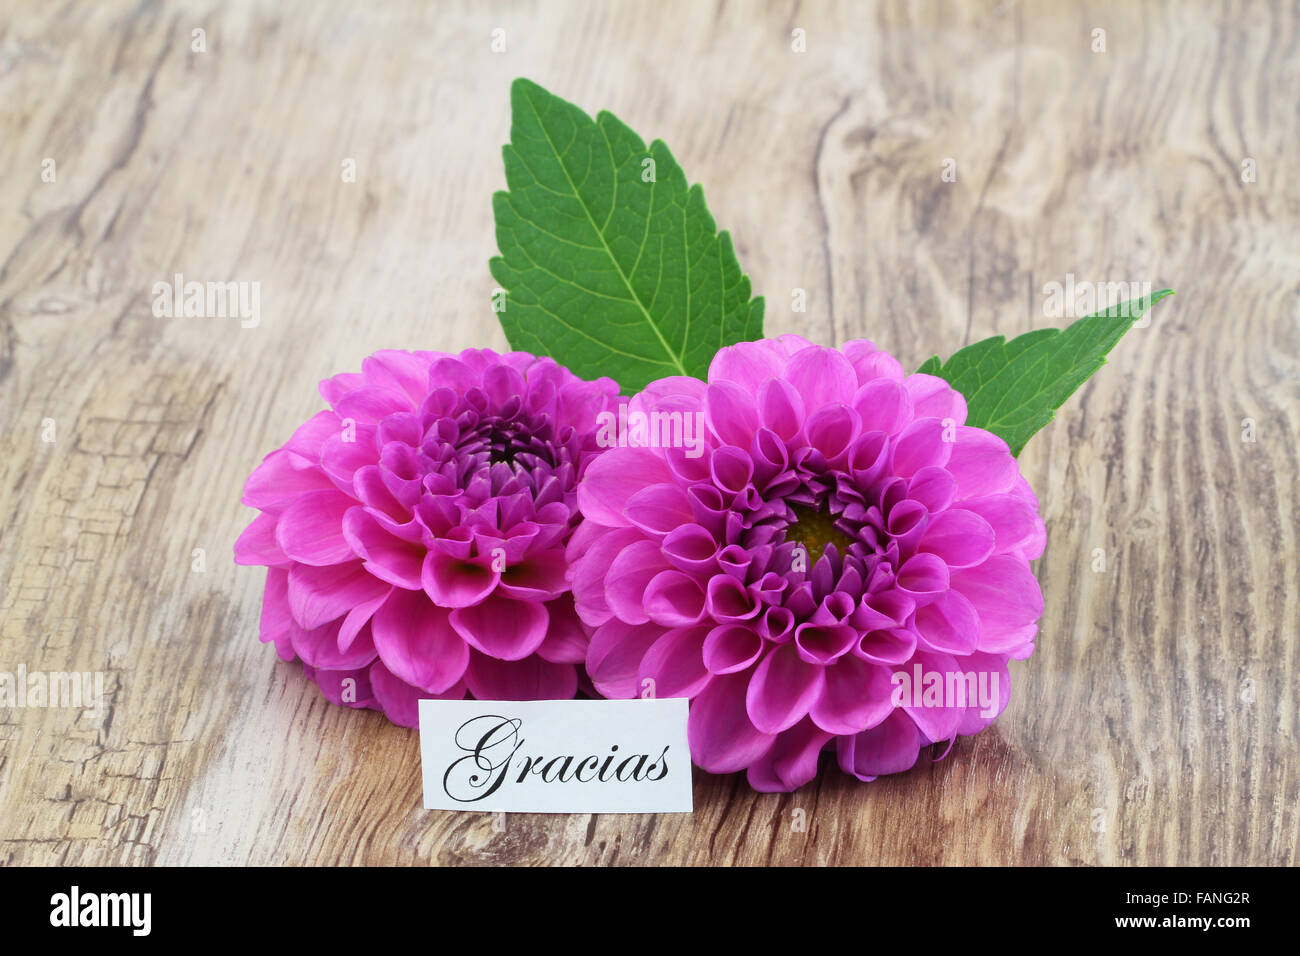 Gracias which means thank you in spanish card with pink dahlia gracias which means thank you in spanish card with pink dahlia flowers izmirmasajfo